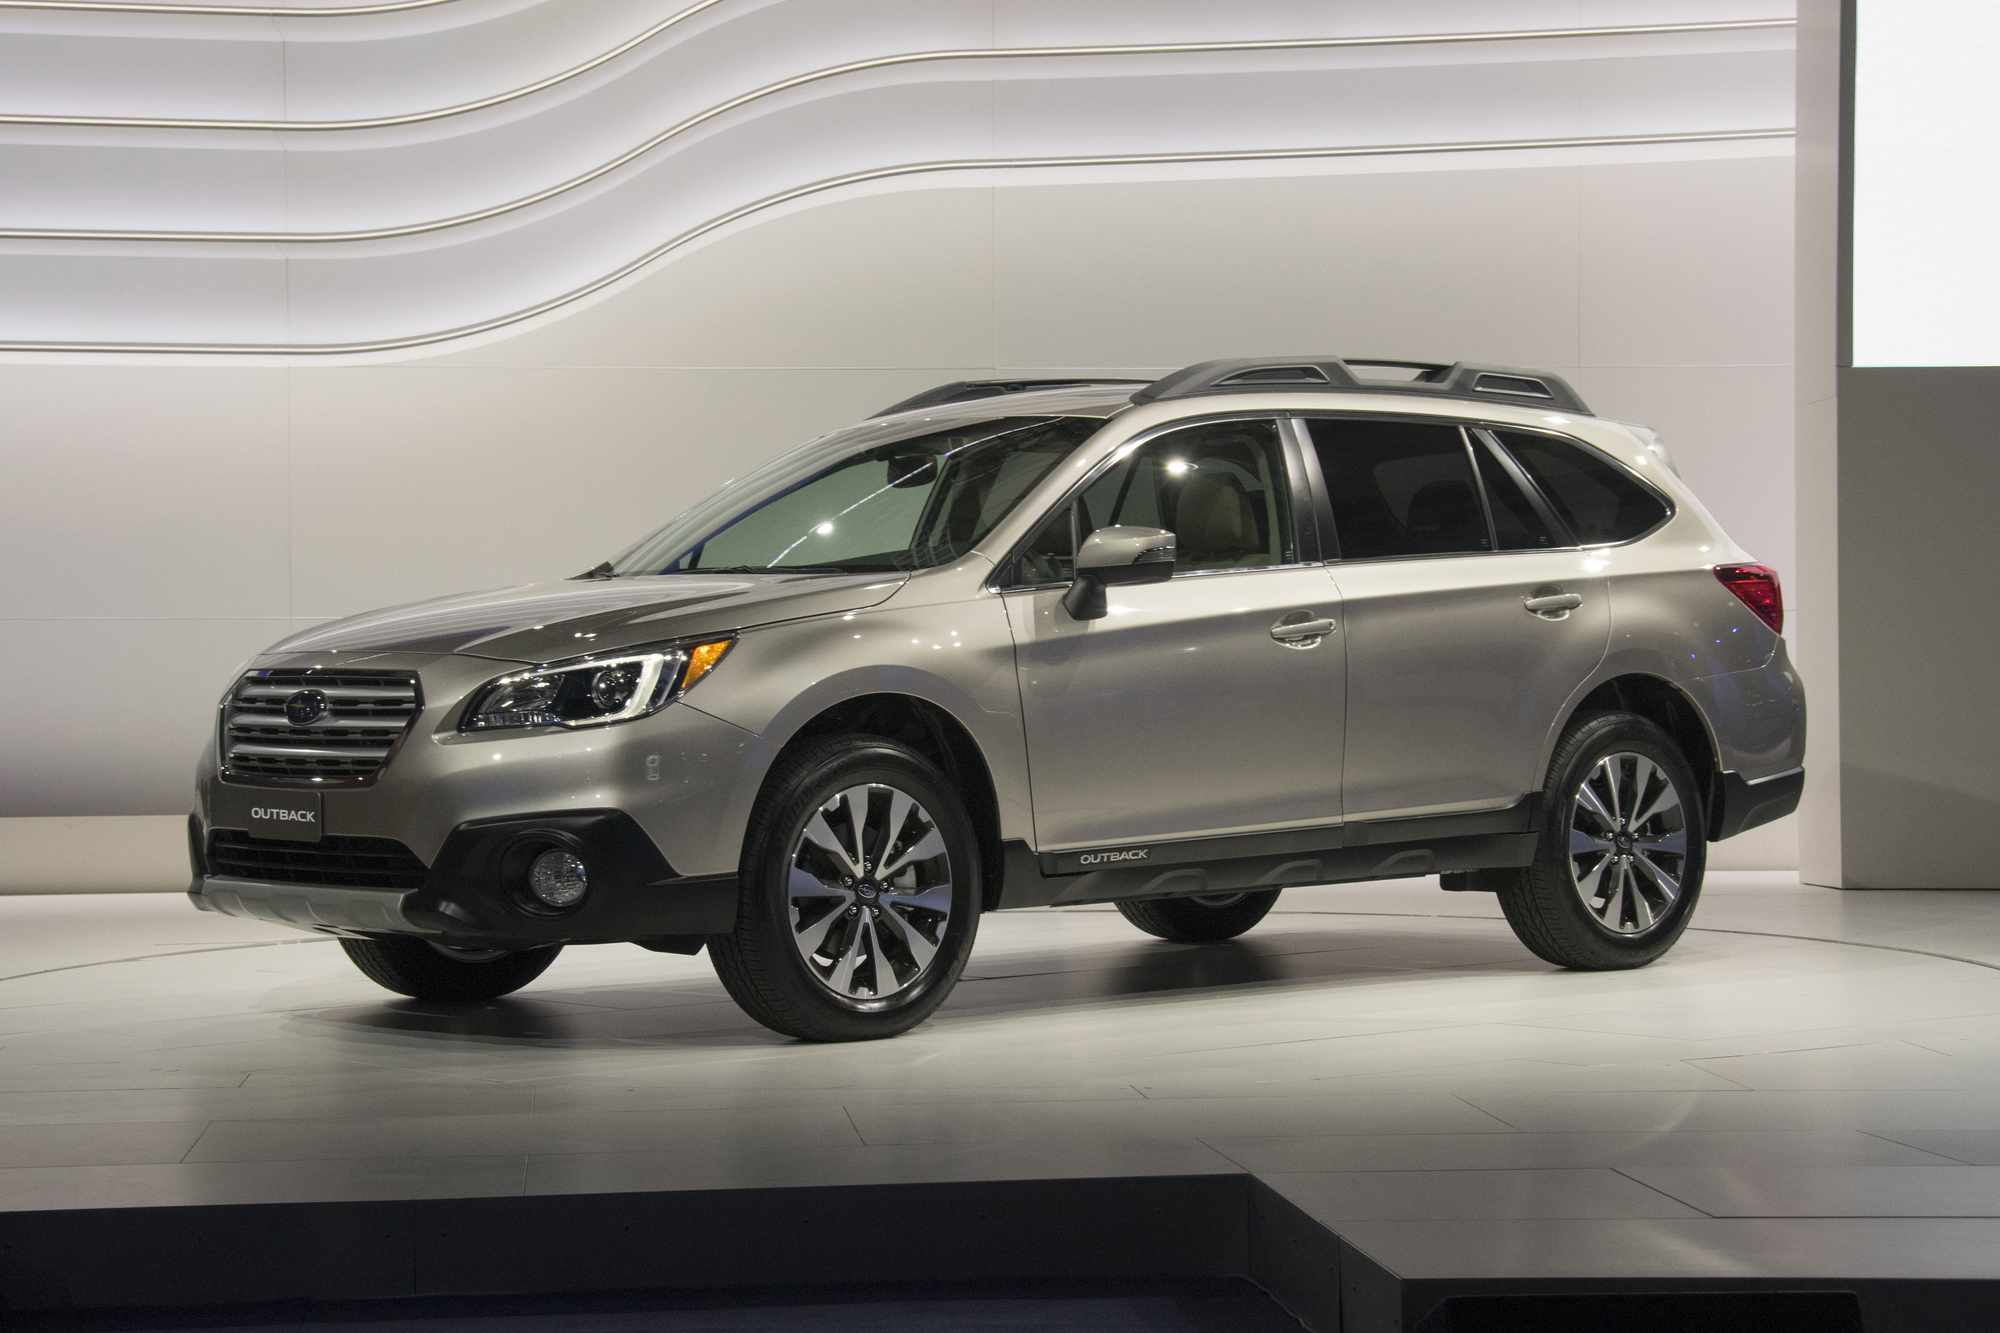 The new Outback was unveiled by Subaru as a more robust station wagon variant of the Legacy